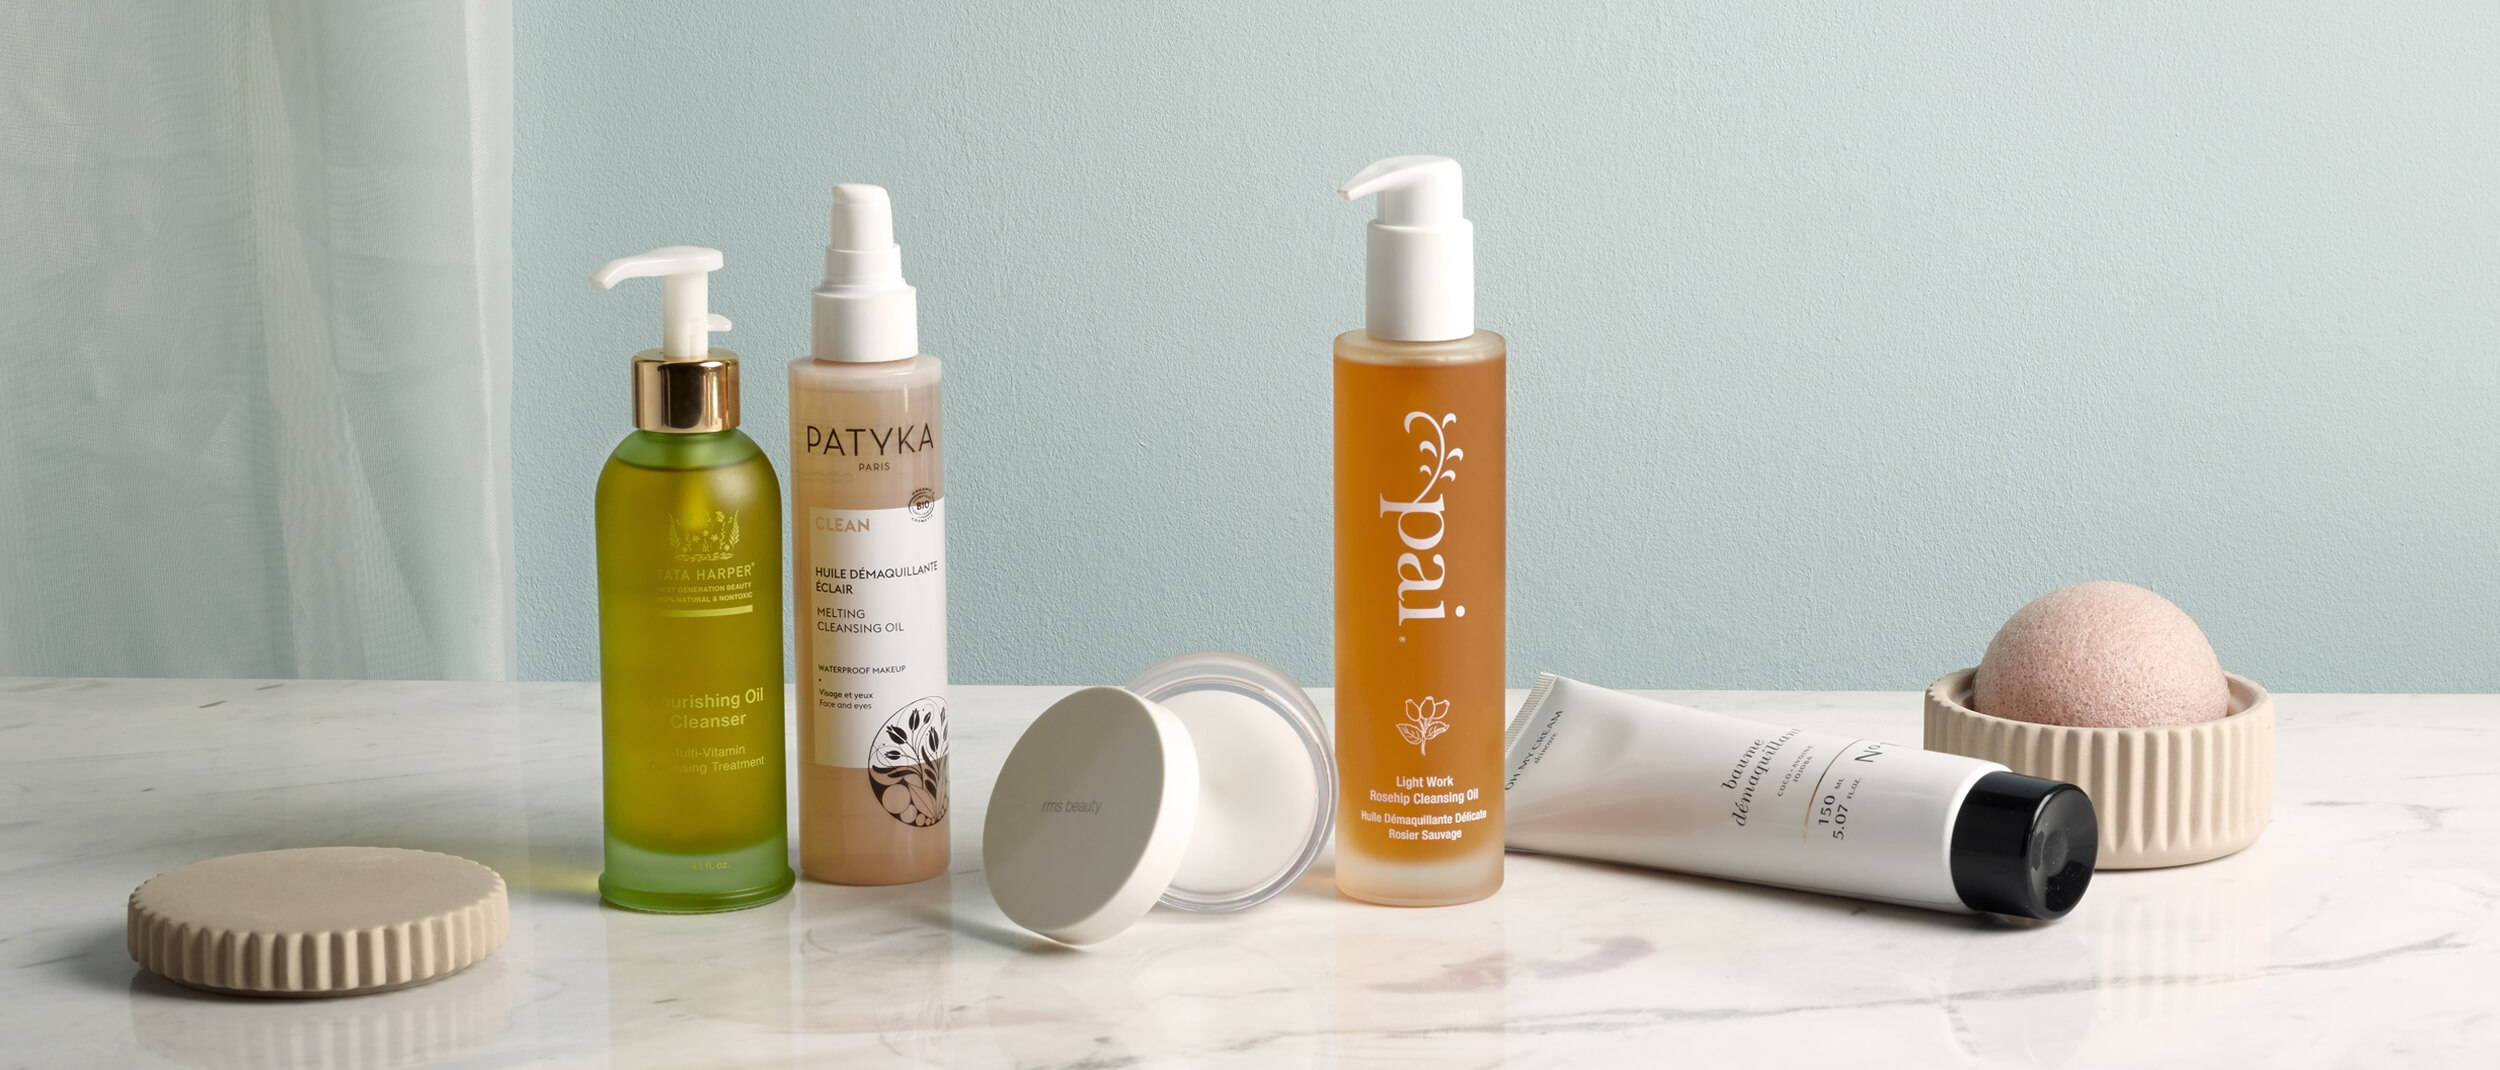 Nourishing Cleansing oil Tata Harper, Huile démaquillante éclair Patyka, Huile démaquillante délicate rosier sauvage Pai Skincare, Baume démaquillant Oh My Cream Skincare